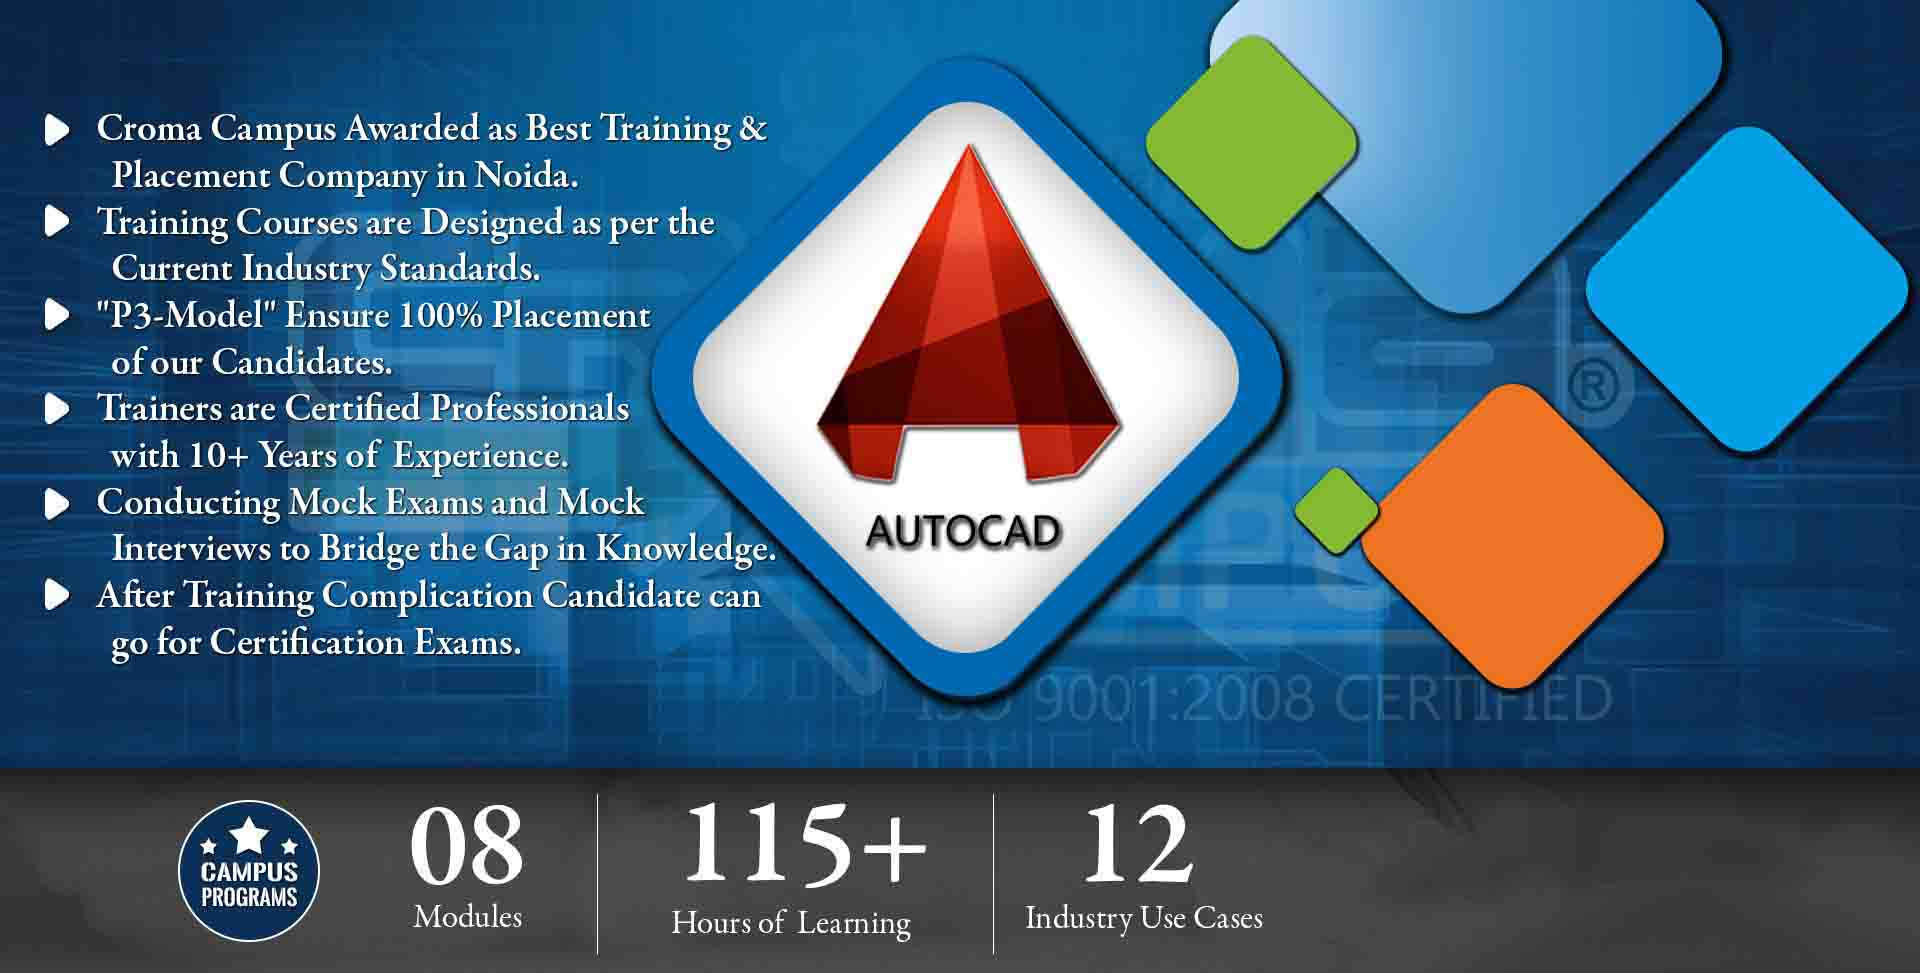 Autocad Training in Gurgaon- Croma Campus